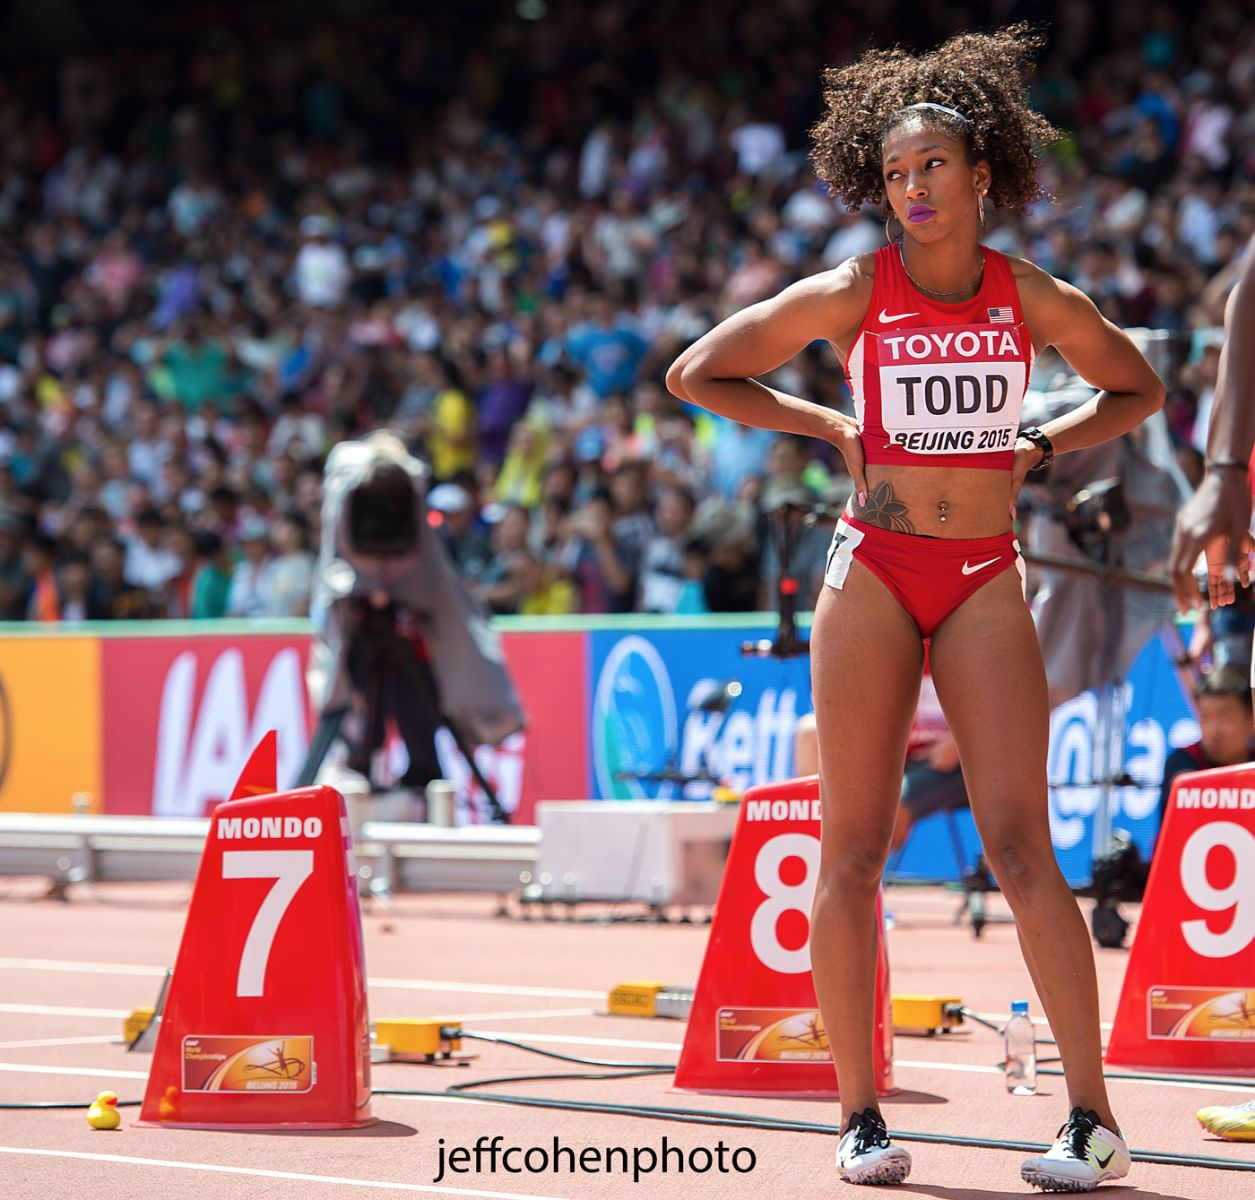 1beijing2015_day2_jasmine_todd_100mw_duckie_jeff_cohen_photo_6226_web.jpg